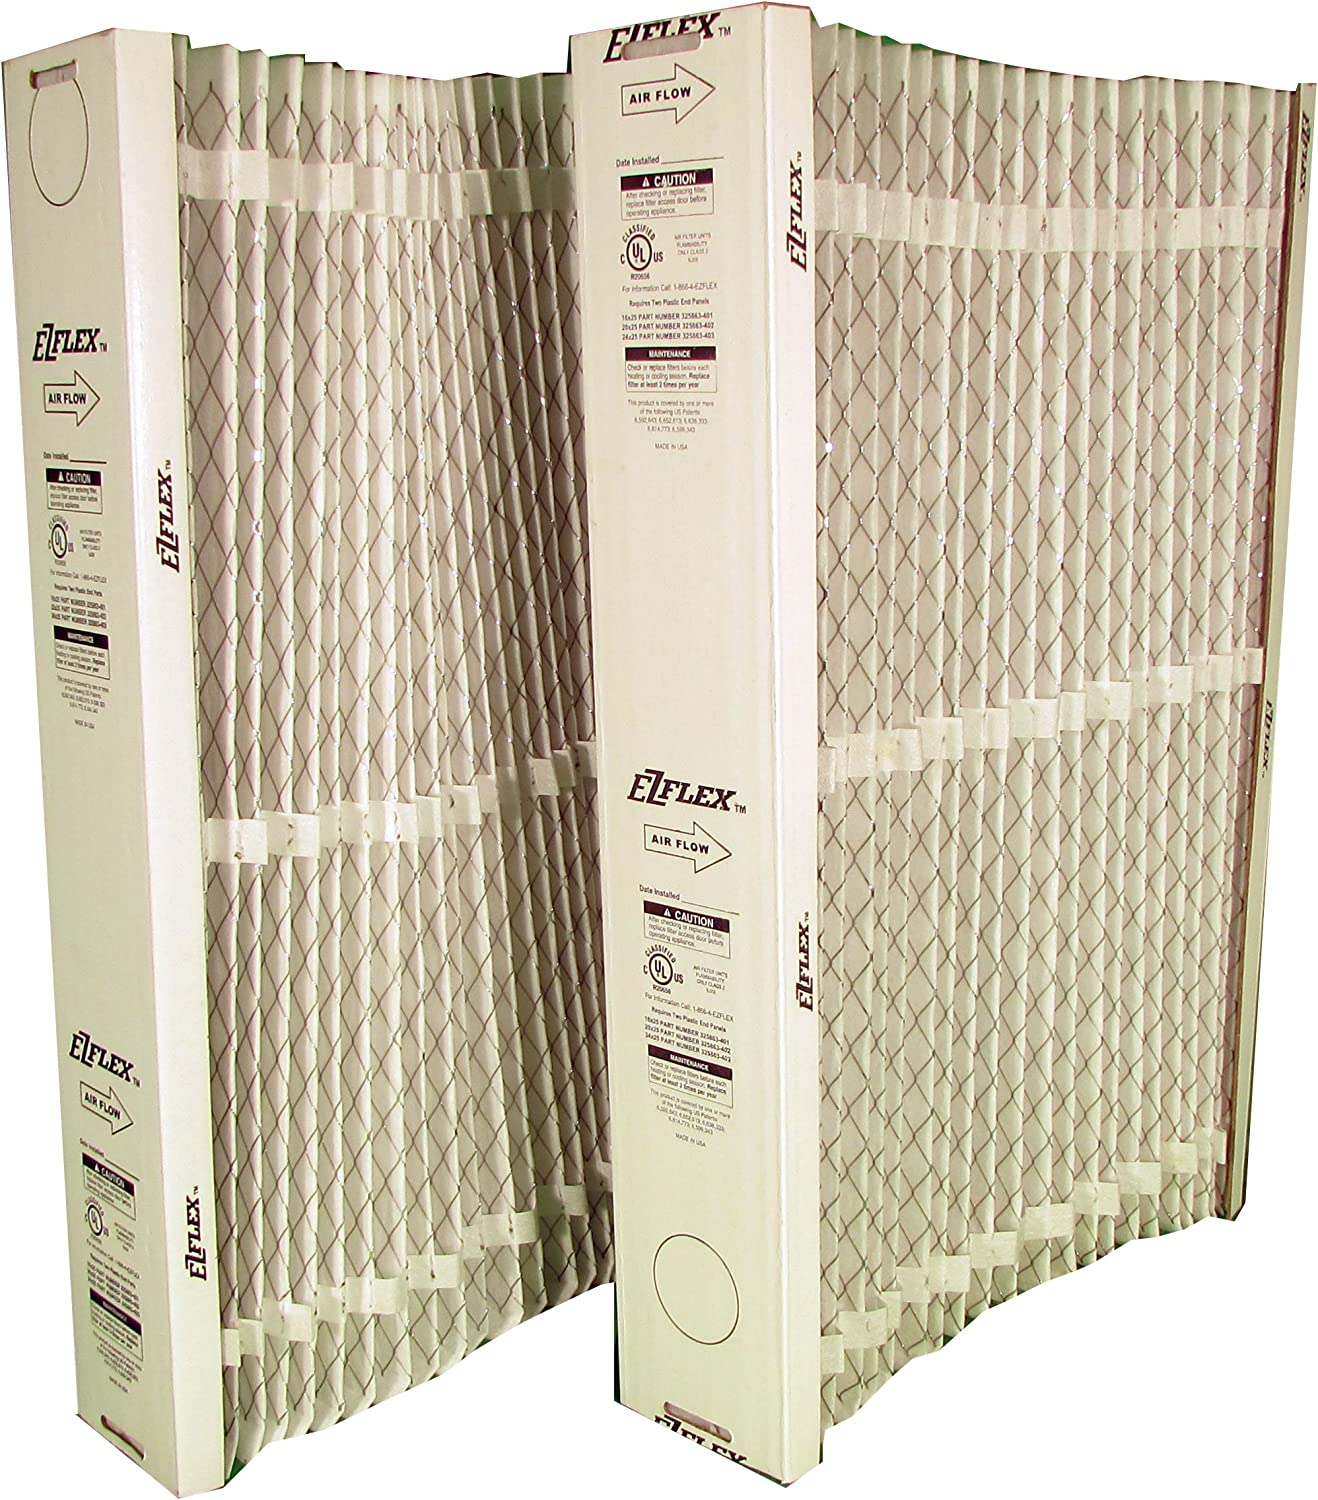 Bryant Carrier EZ-FLEX expxxfil0020 Filter Media Max Complete Free Shipping 76% OFF